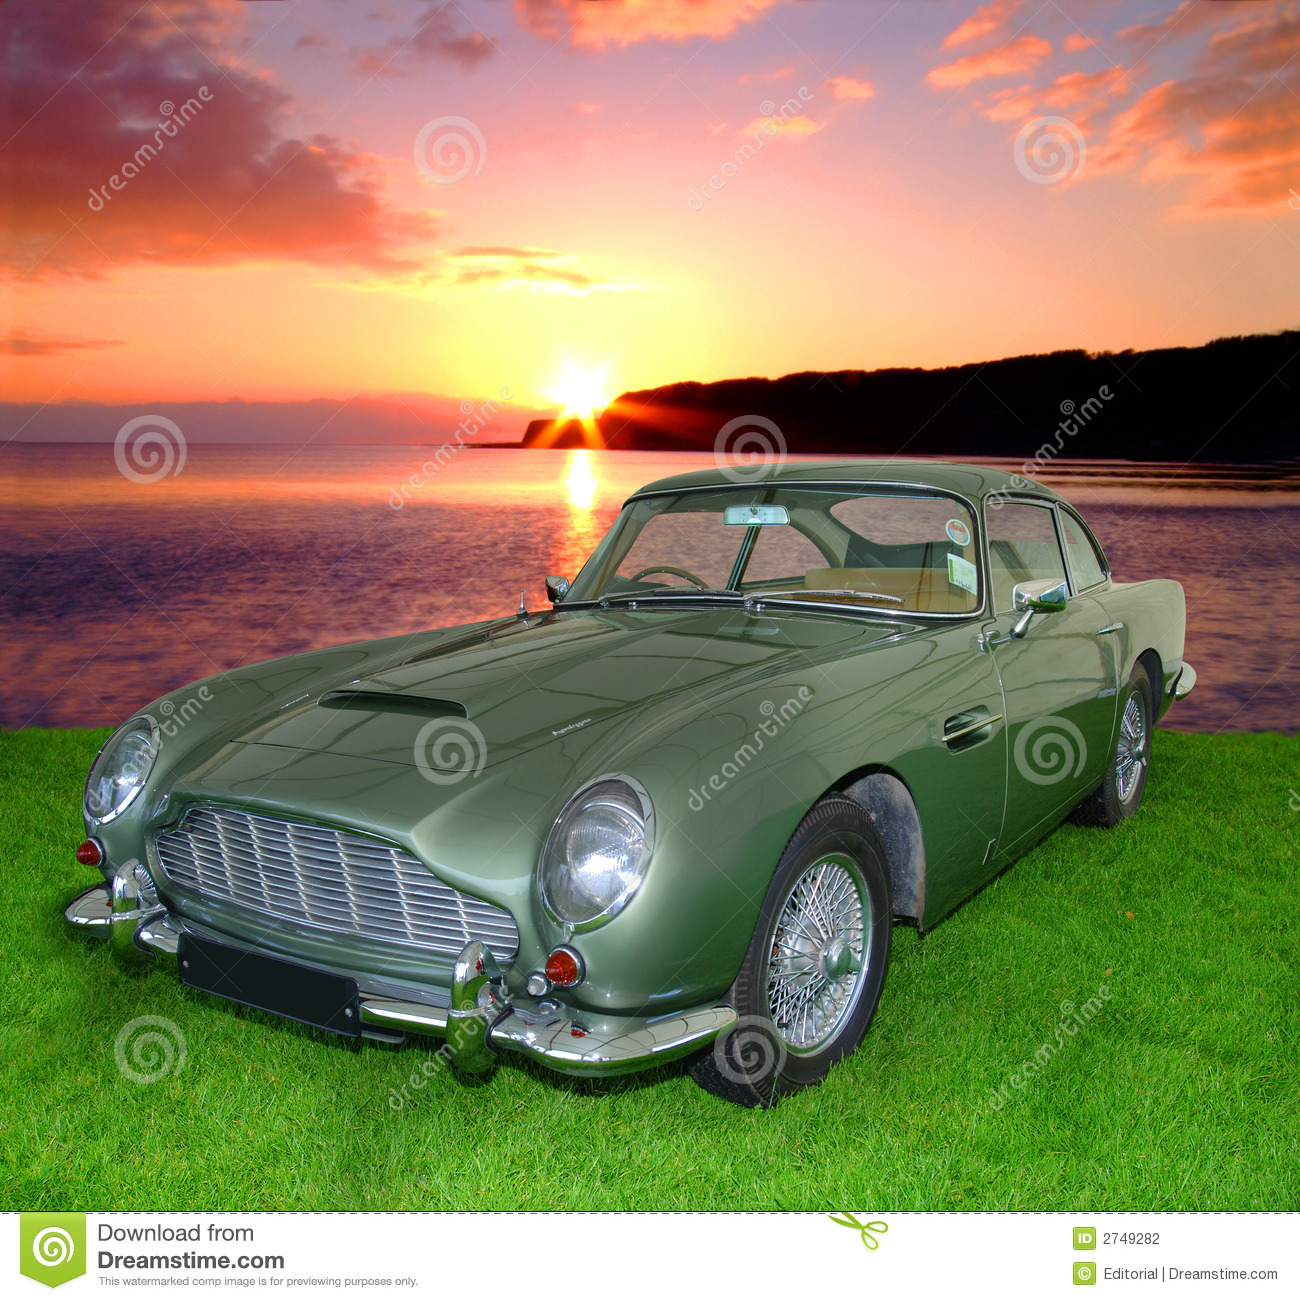 Stock Photography: Vintage Car At Sunset. Image: 2749282